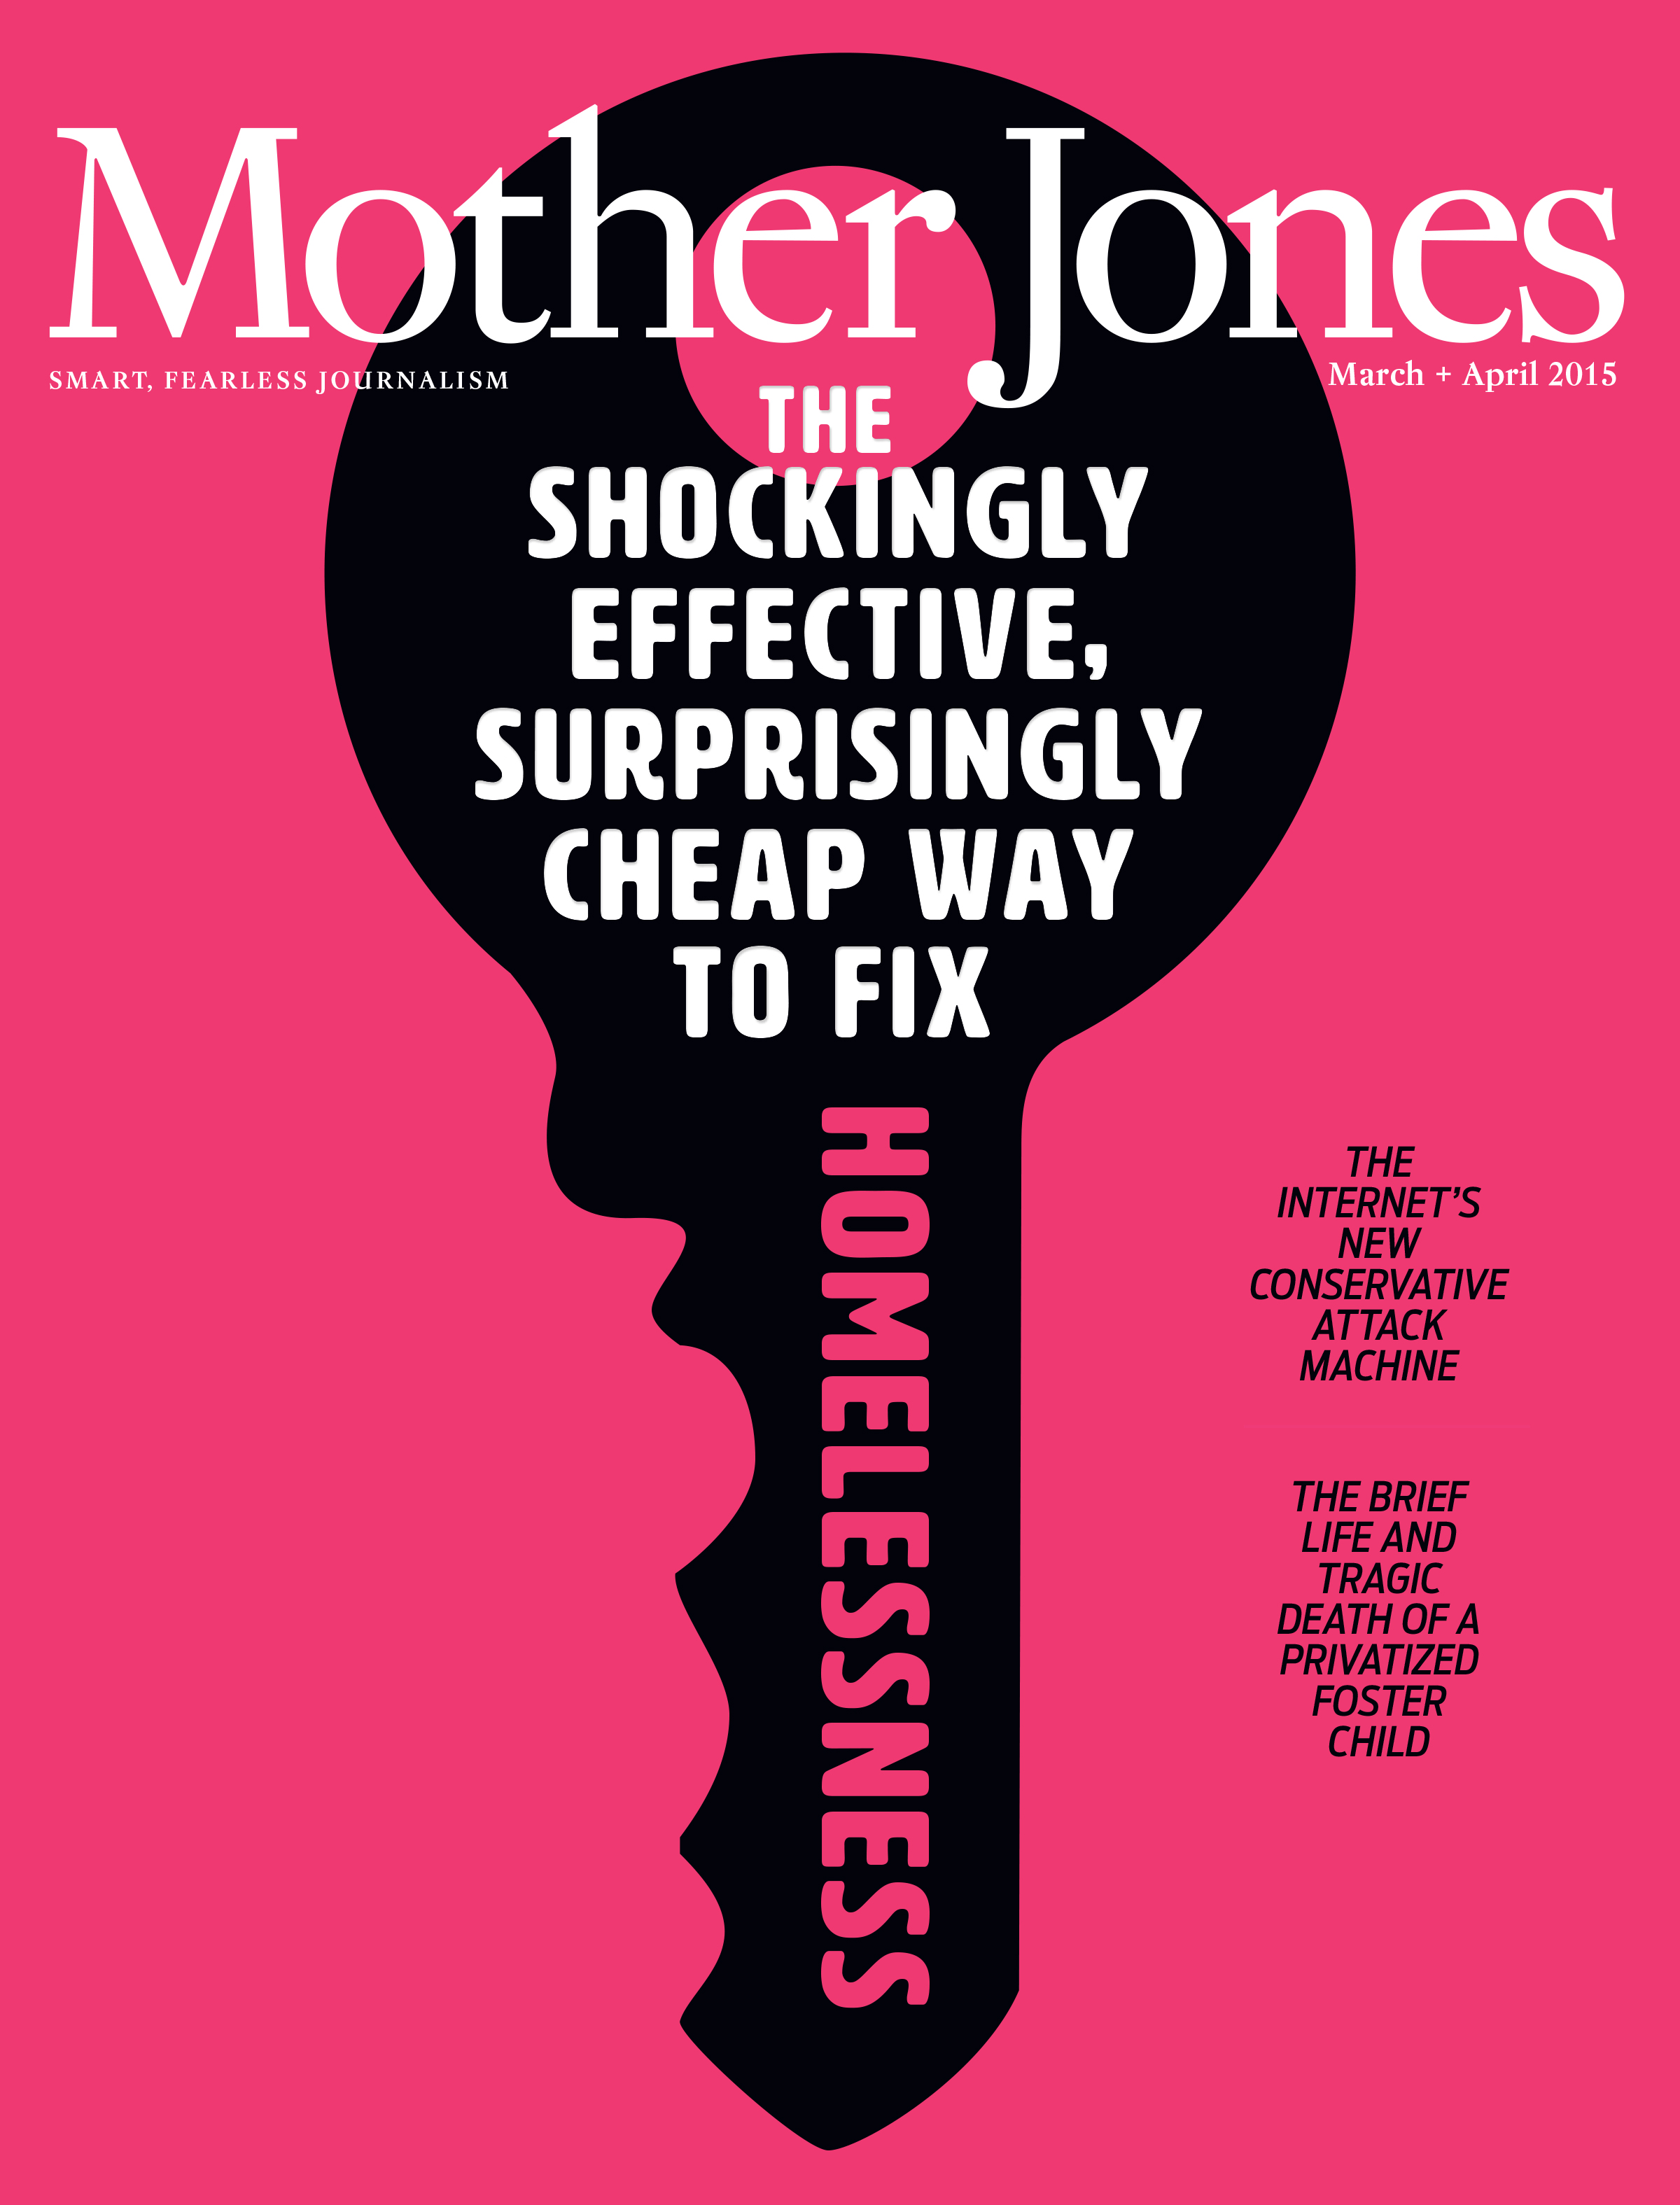 Mother Jones Magazine Cover : March + April 2015